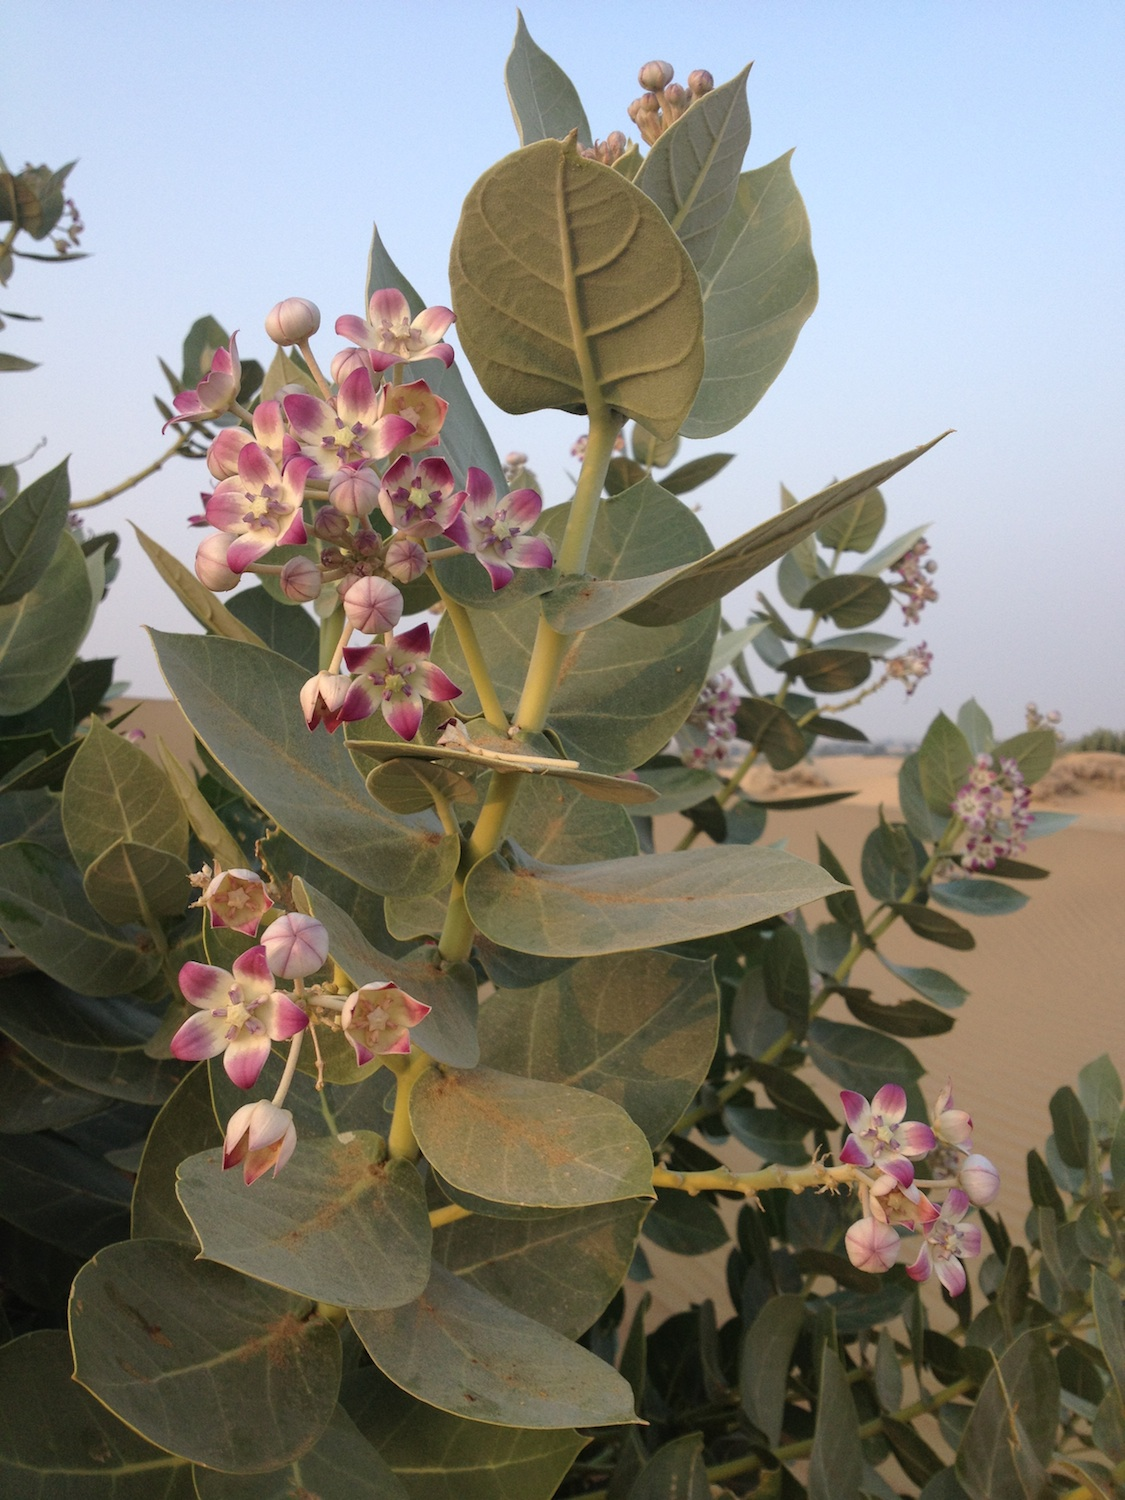 Can you identify this bush with nice waxy flowers in Thar desert?